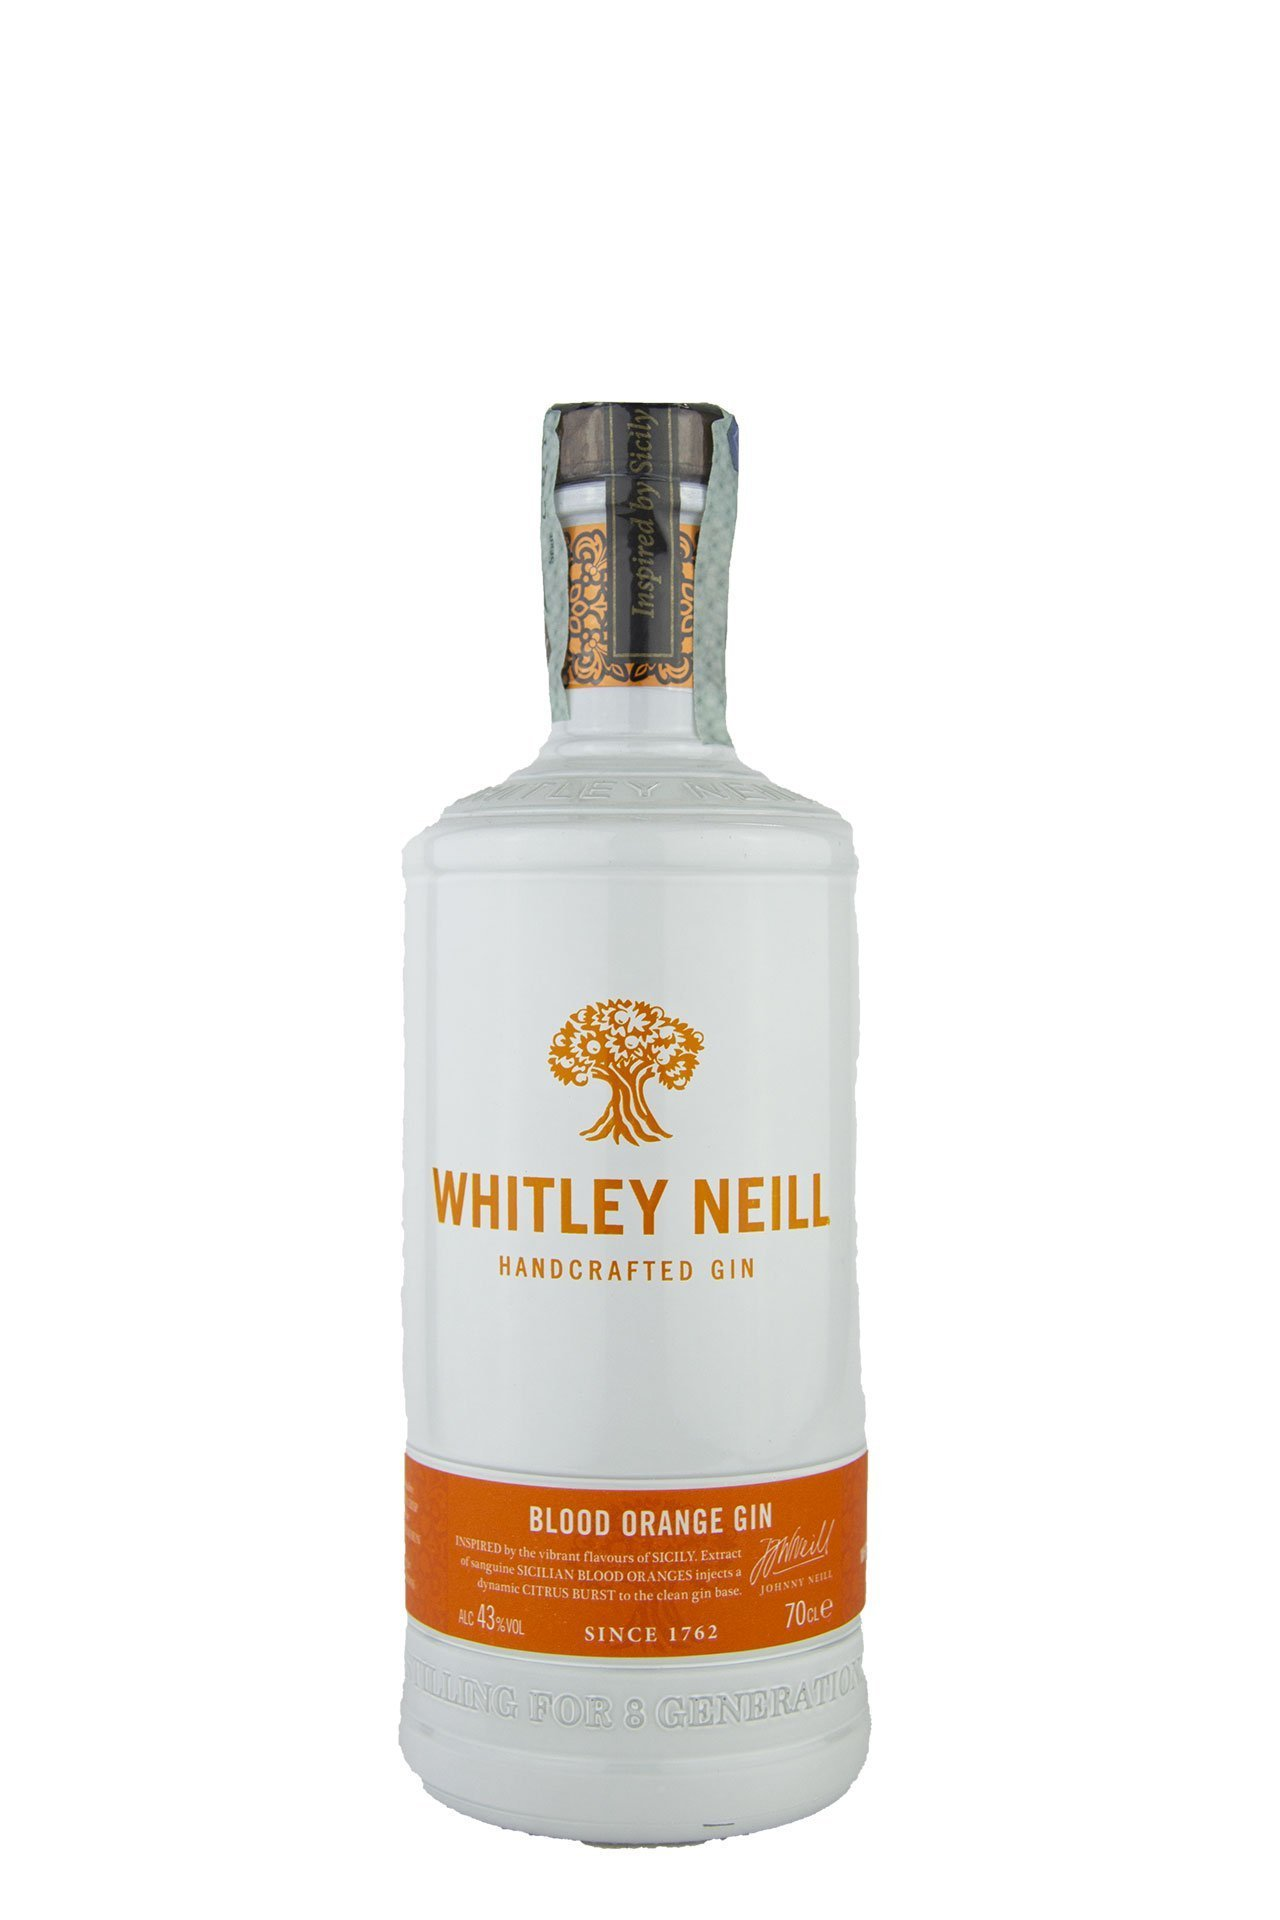 Whitley Neill – Blood Orange Gin